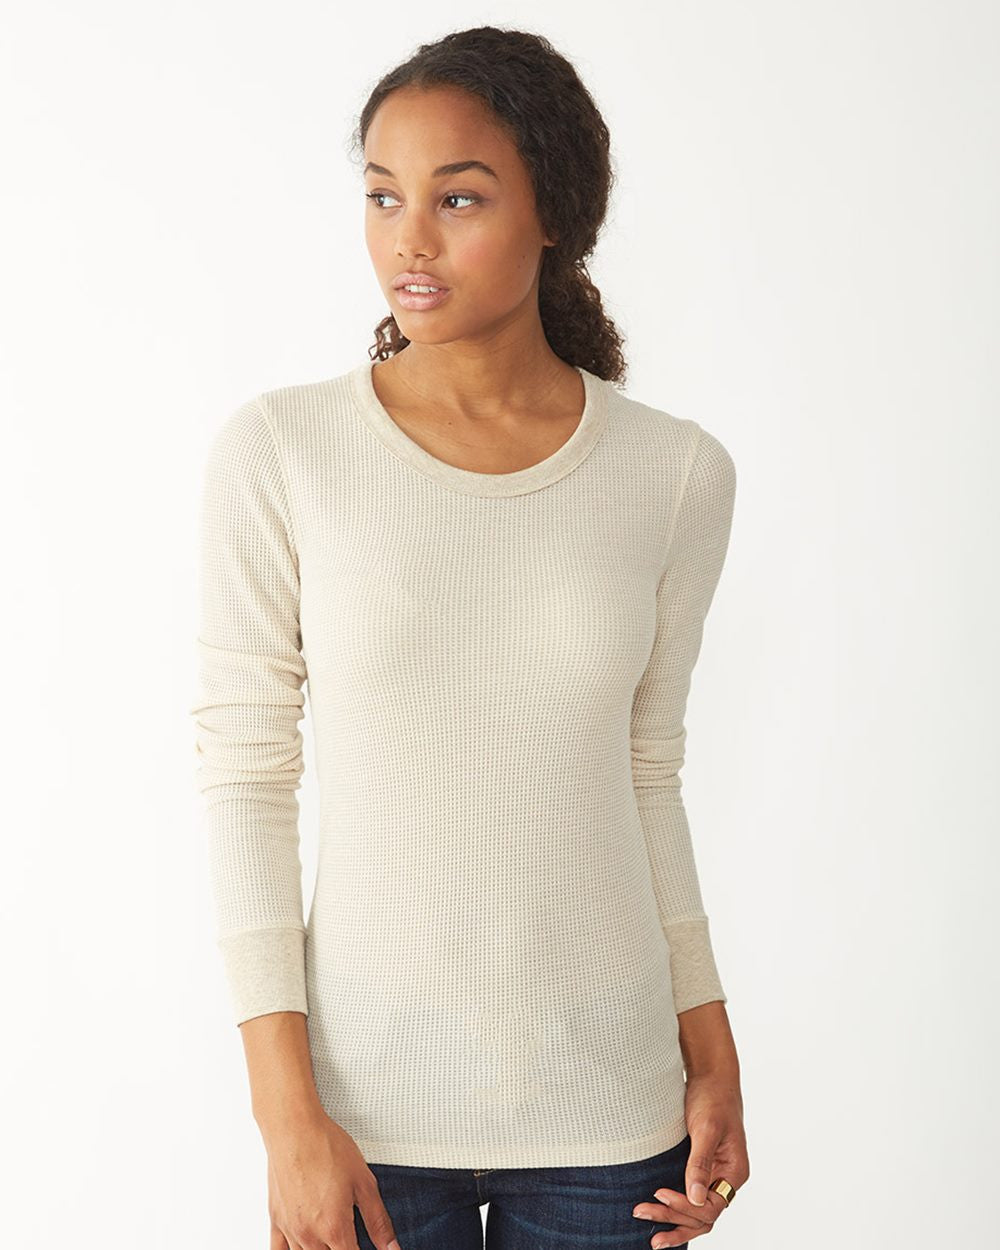 4305-Women's Cozy Long Sleeve Eco Thermal